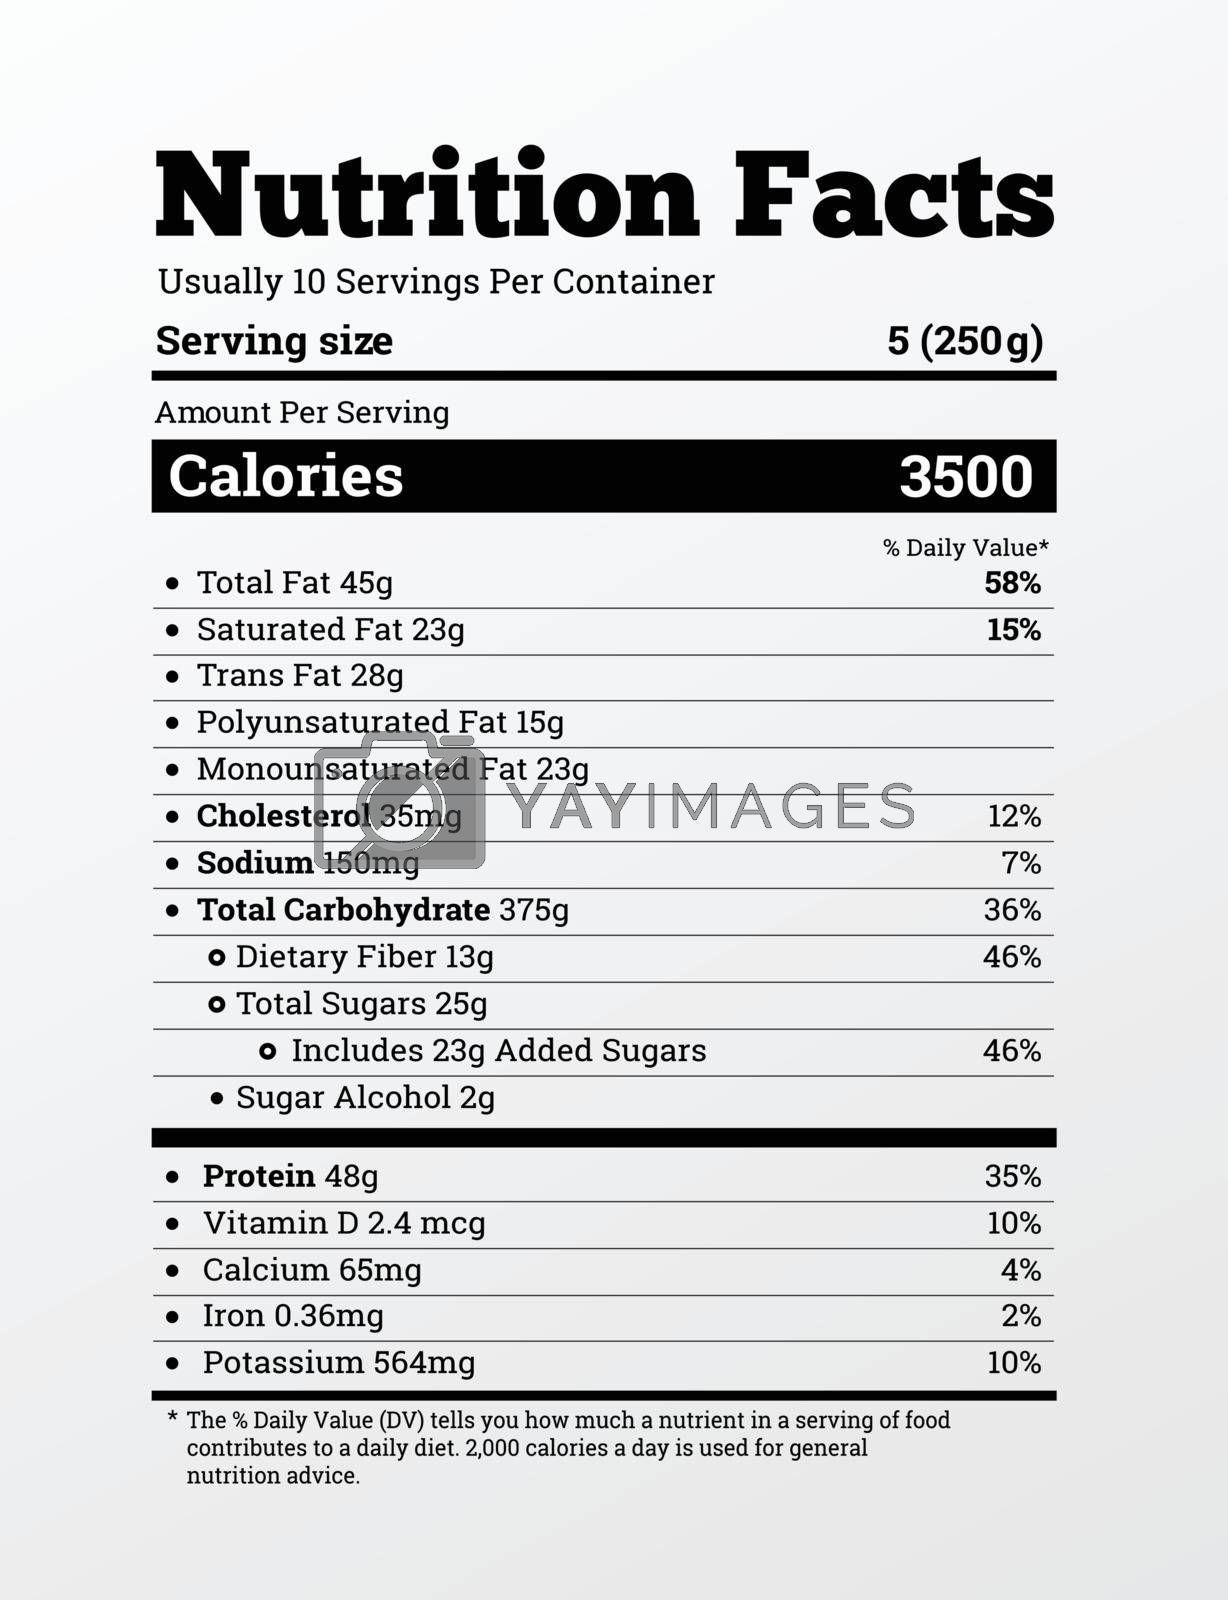 Nutrition facts label design vector illustration. Content of calories, vitamins, fats and other elements